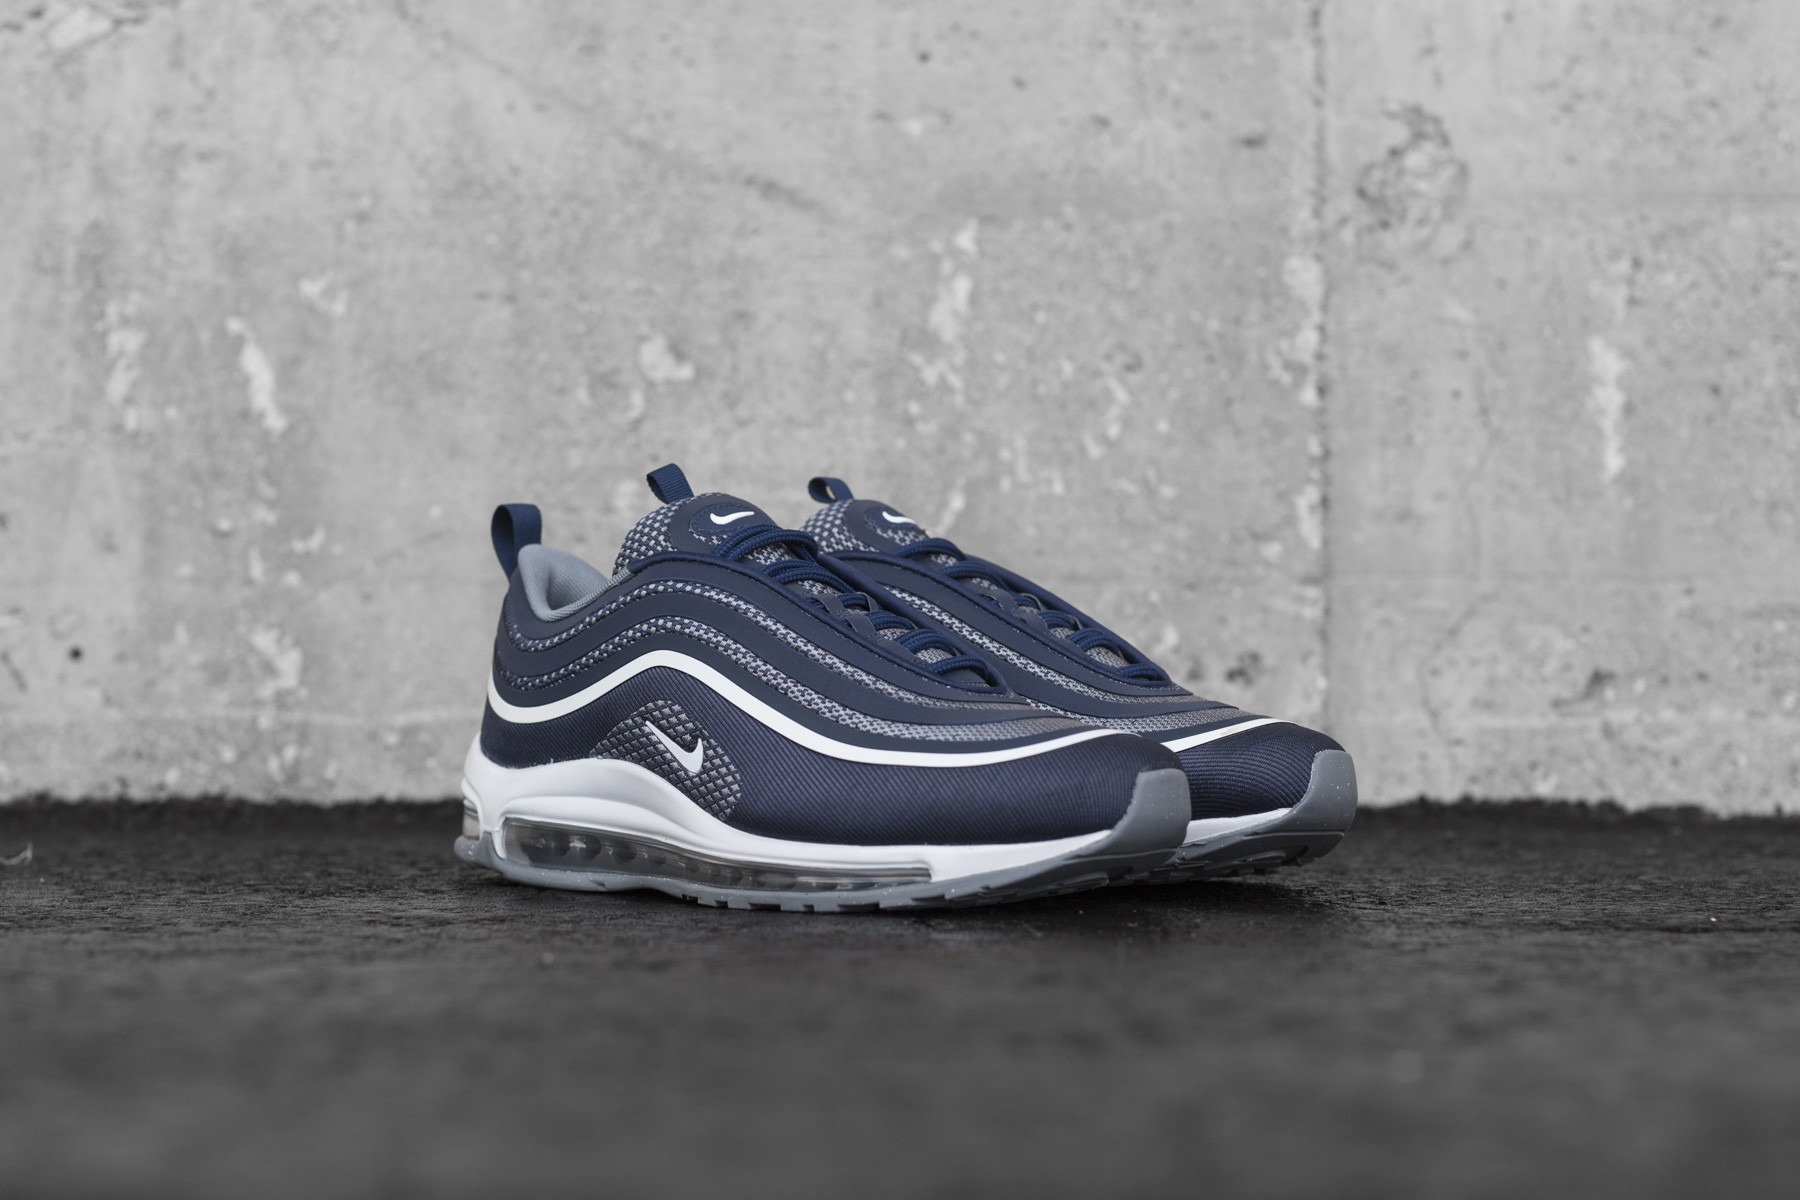 Nike Air Max 97 Herre Sneakers Sneaker.no